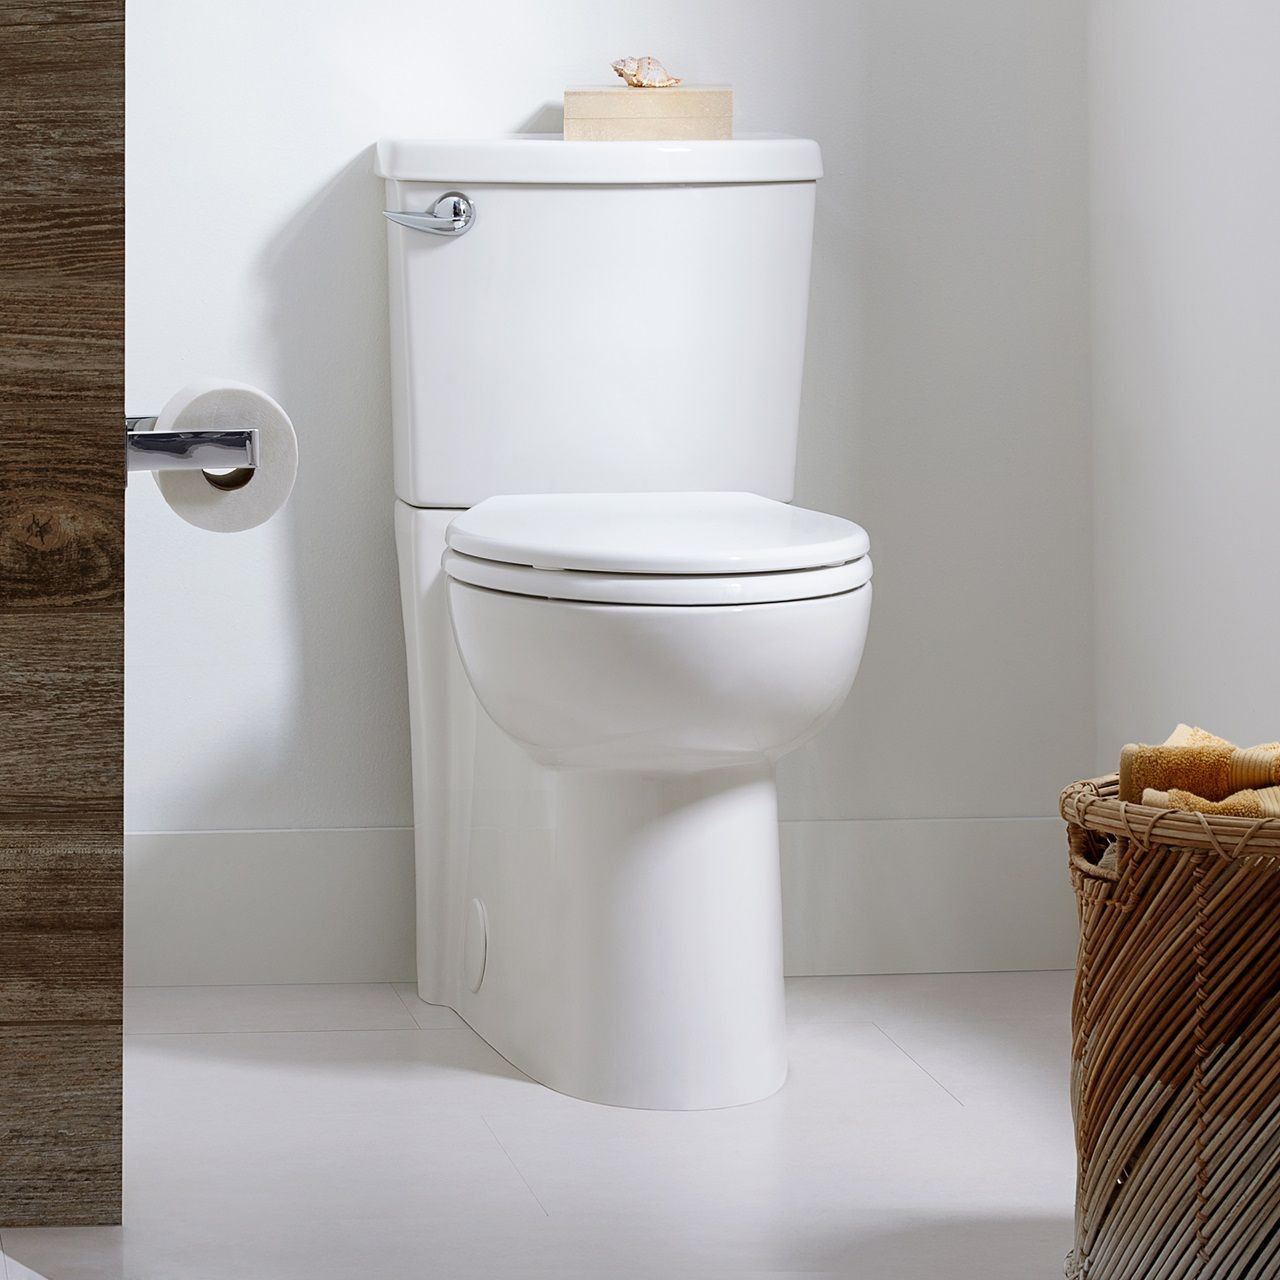 Cadet 3 Right Height Elongated Toilet American Standard Low Flow Toilet American Standard Wall Hung Toilet